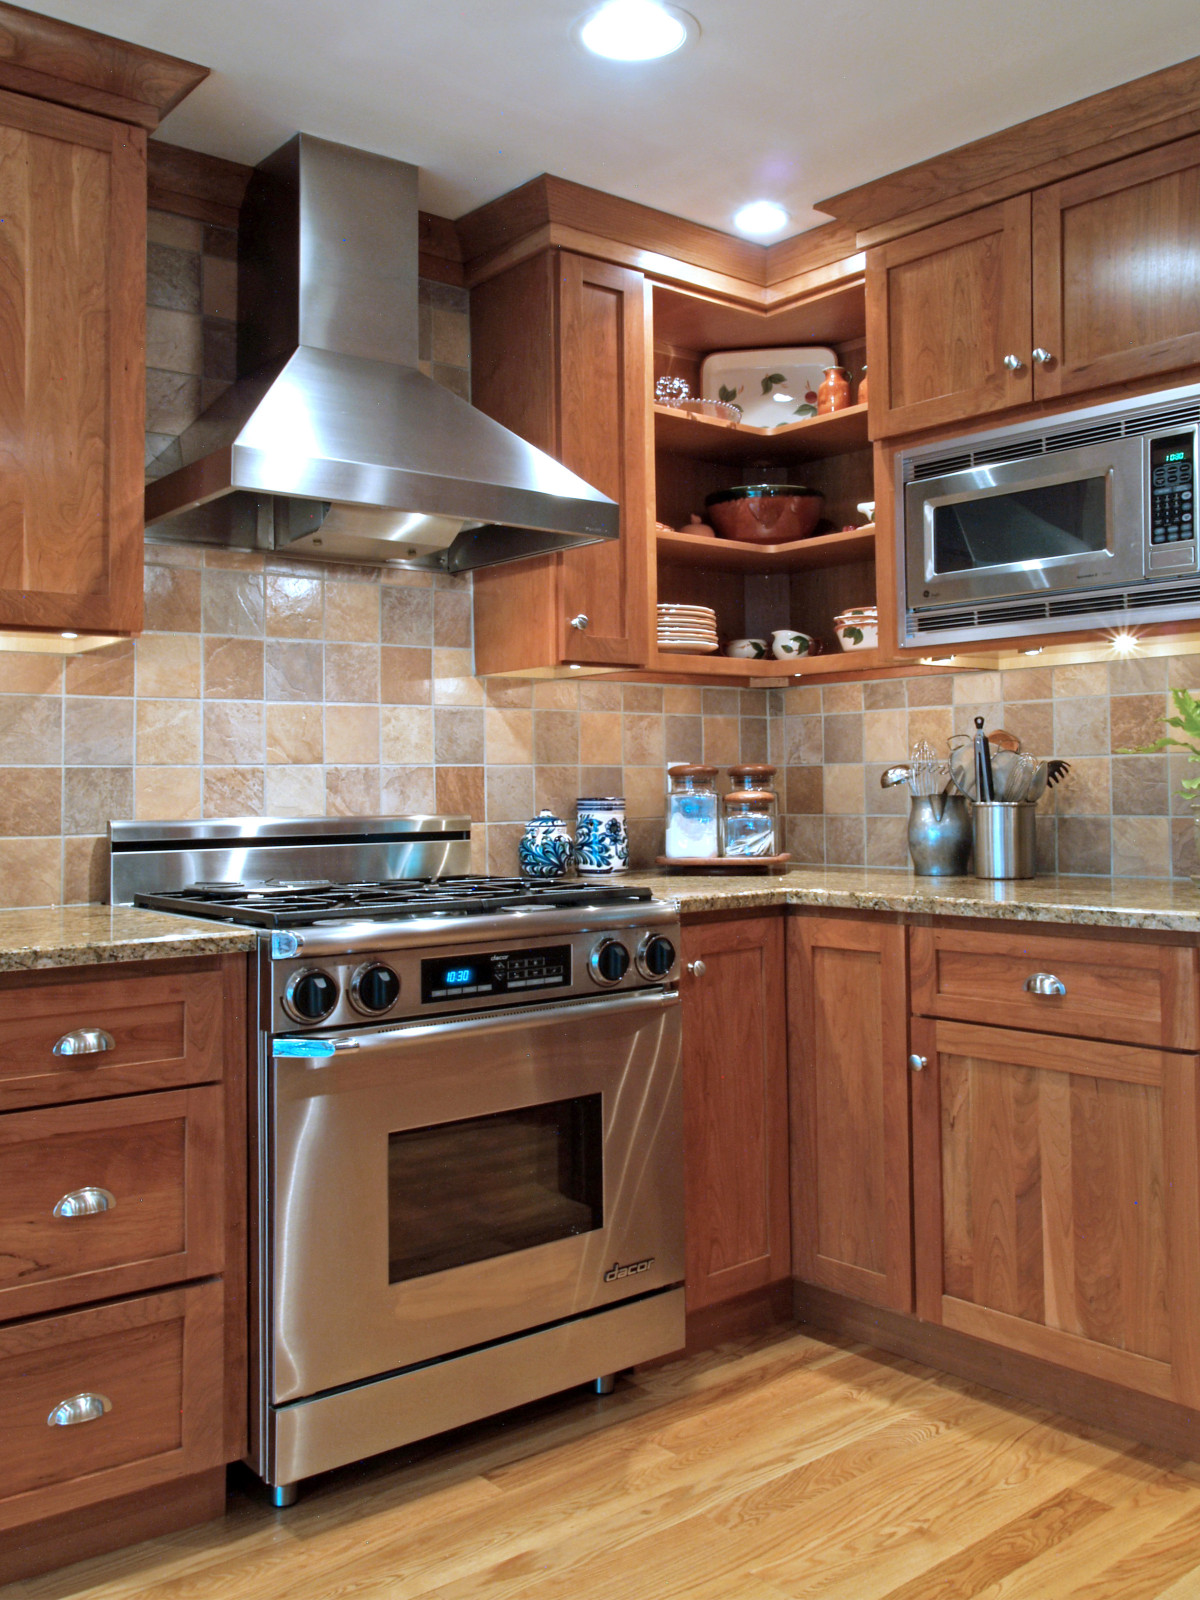 Kitchen Backsplash Tiles  Spice Up Your Kitchen Tile Backsplash Ideas